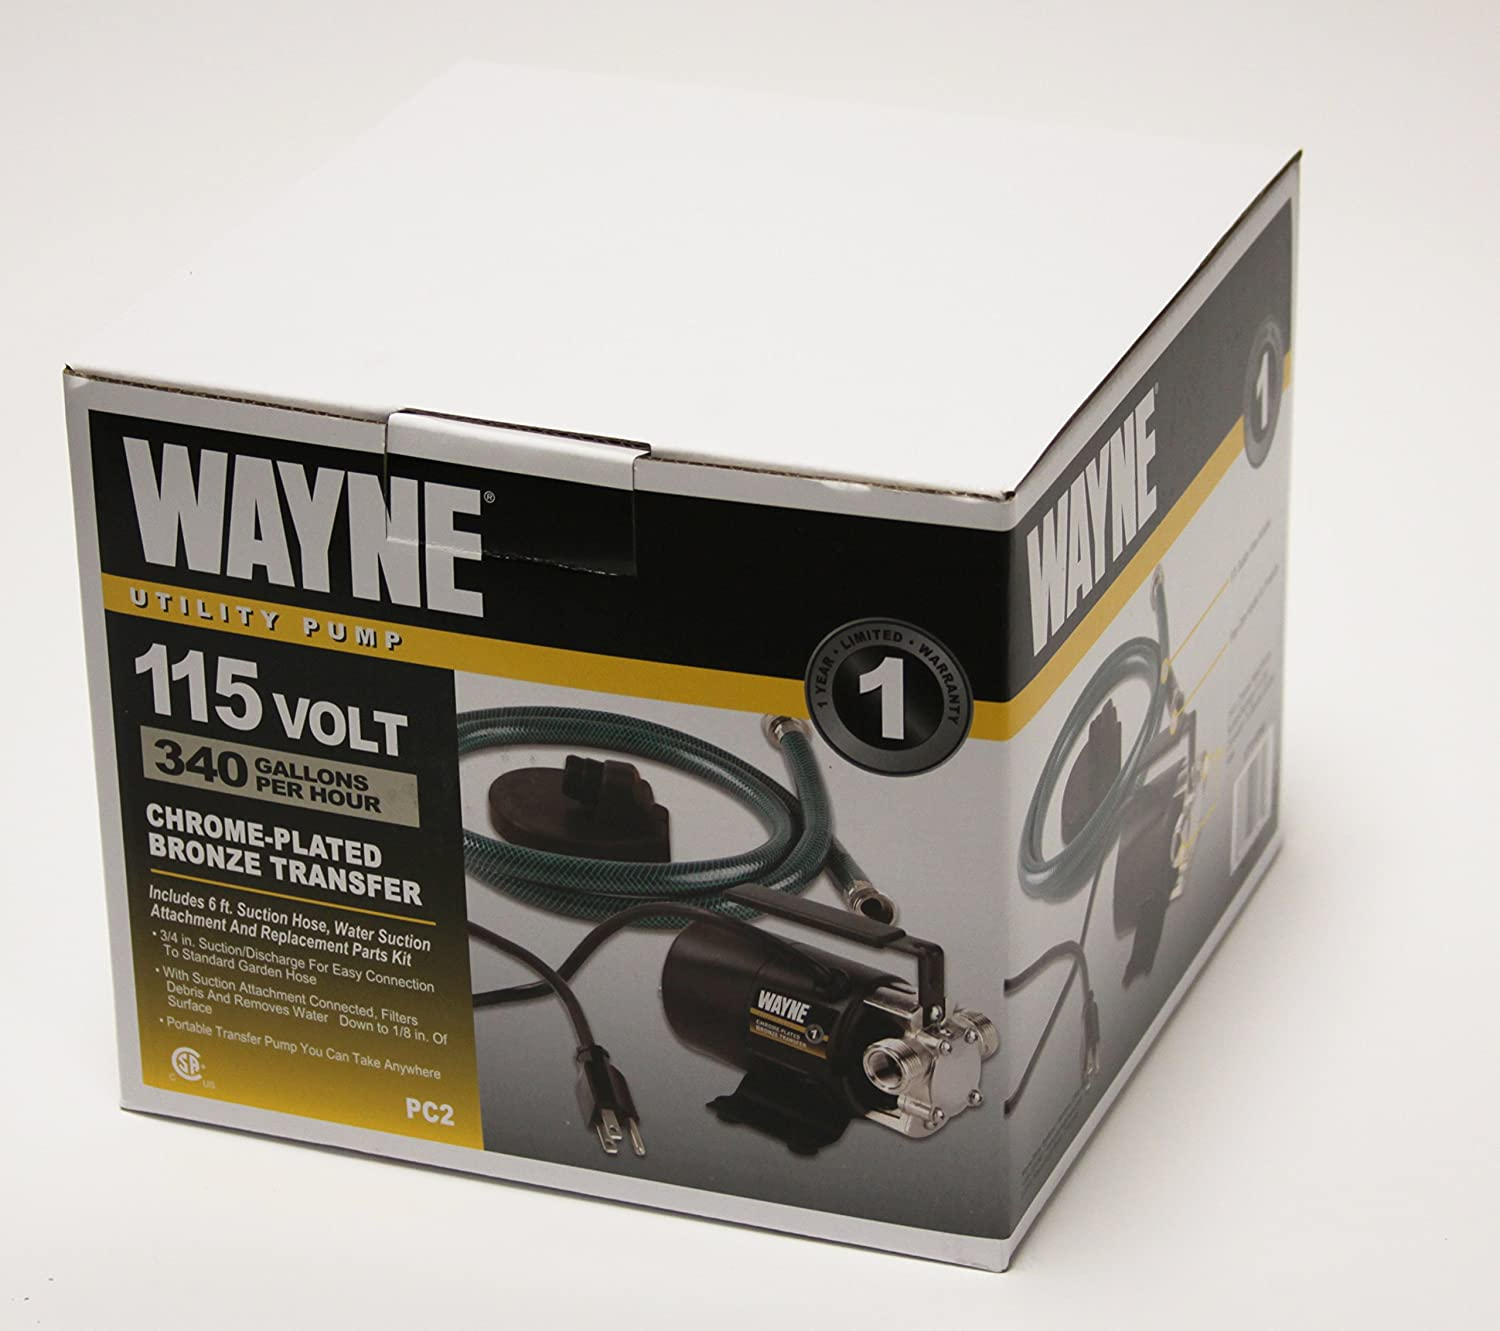 WAYNE PC2 Portable Transfer Water Pump With Suction Hose And Attachment,  Black - Sump Pumps - Amazon.com